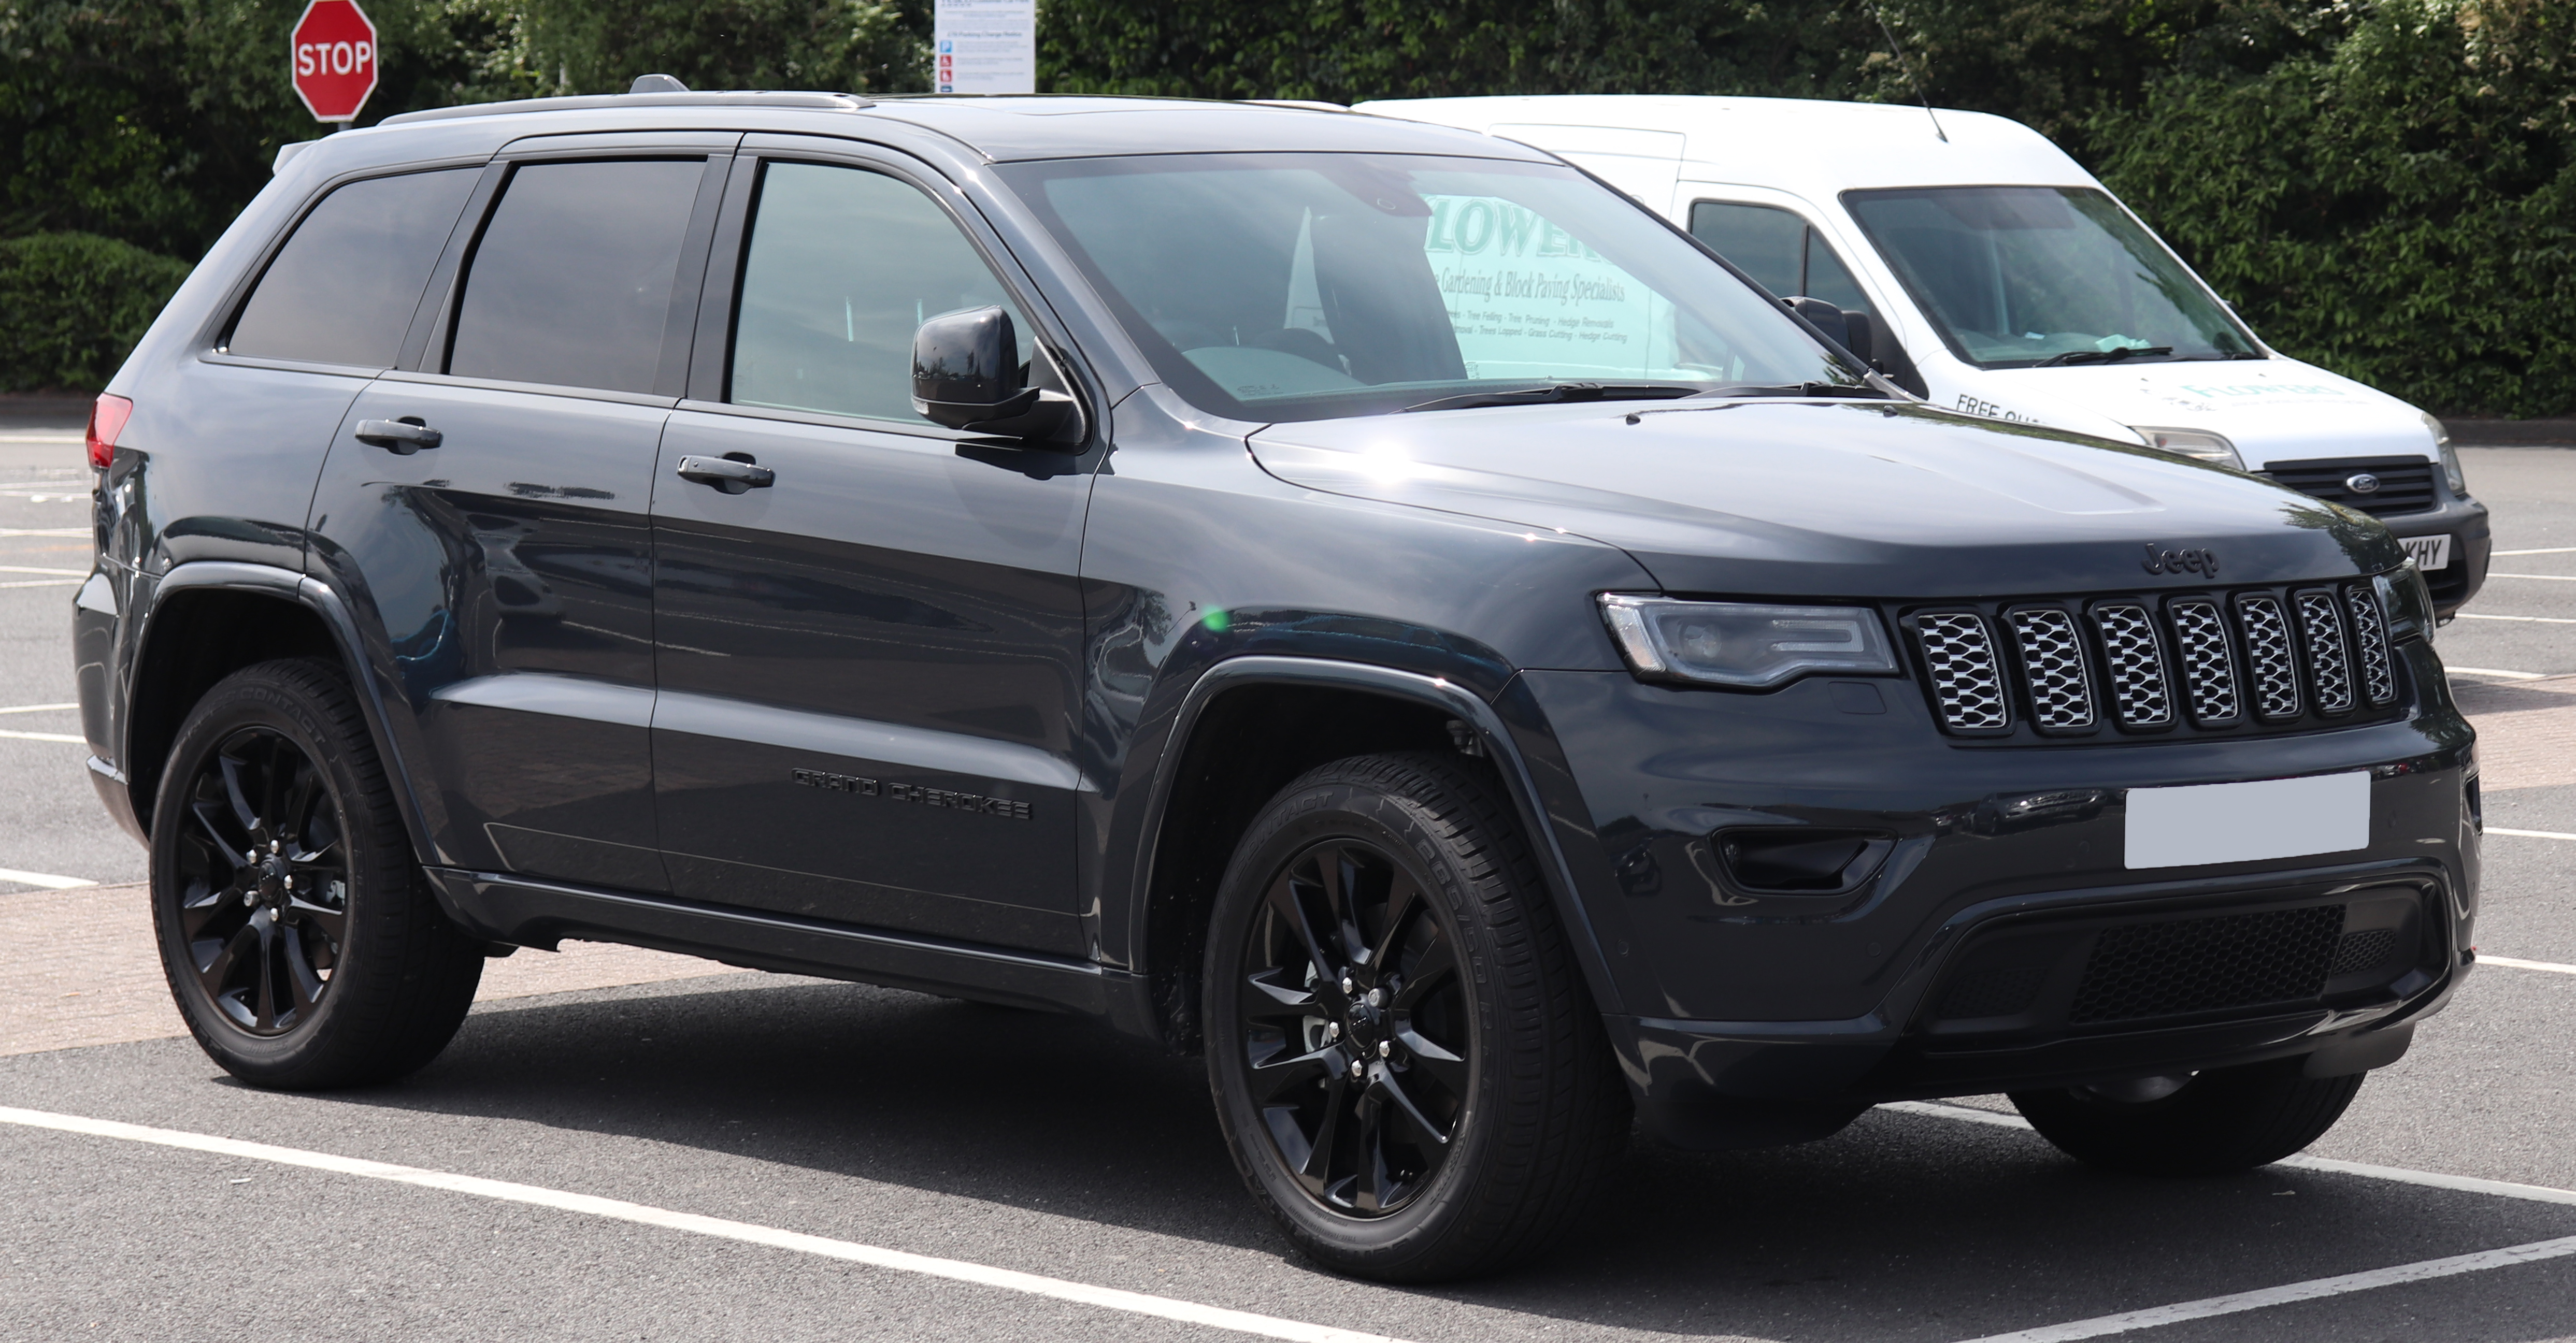 Ficheiro:2018 Jeep Grand Cherokee Night Eagle 3.0 Front